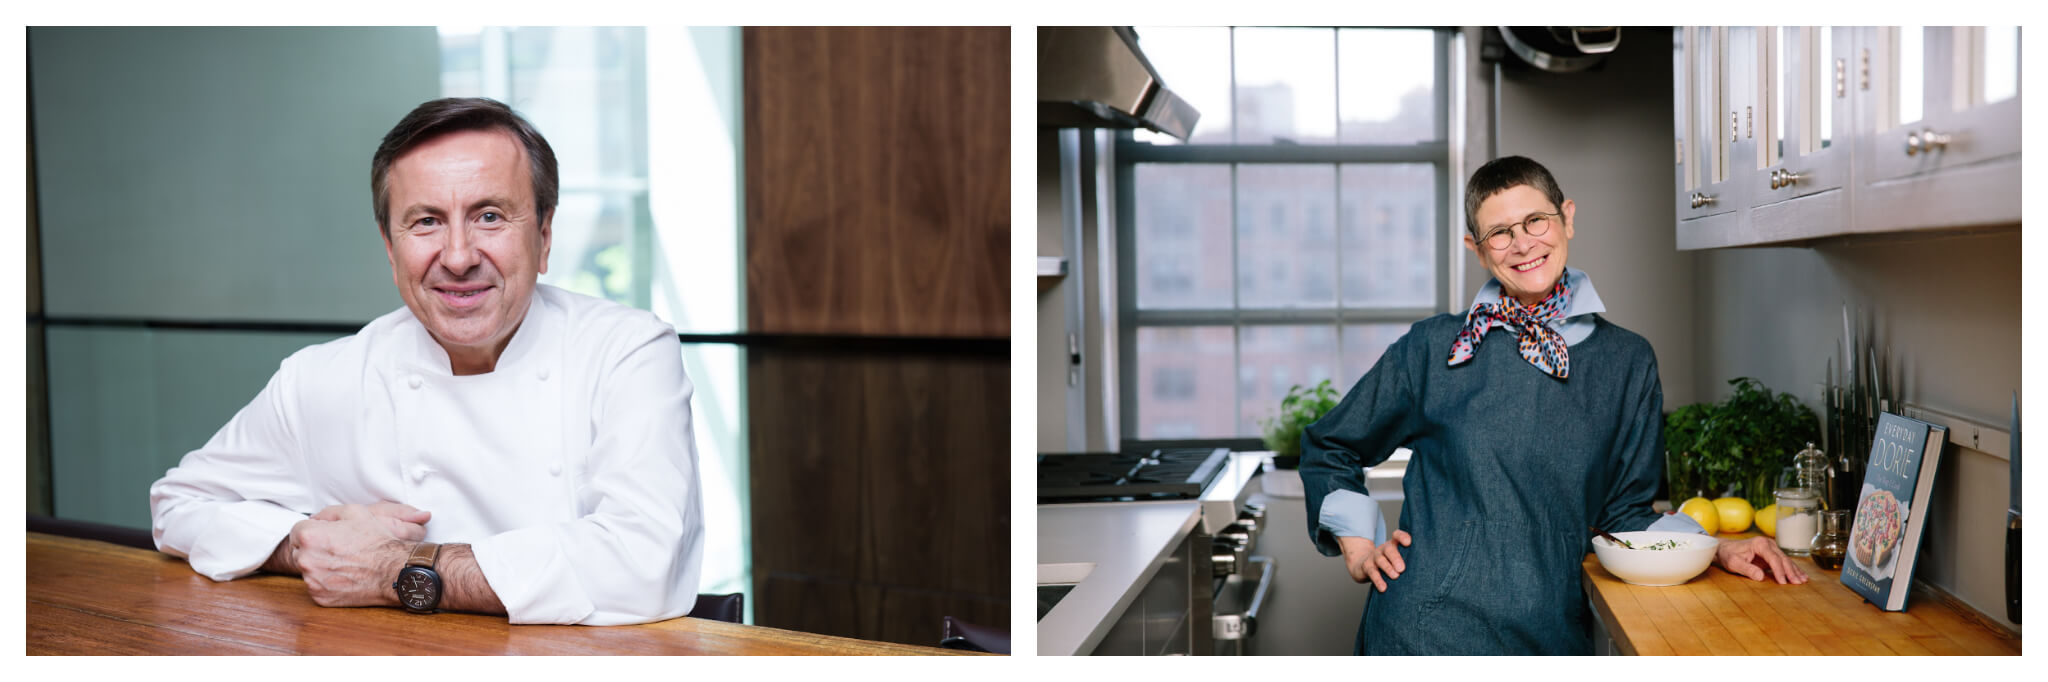 Left: A portrait of chef Daniel Boulud, wearing his chef's coat and smiling at the camera, Right: A portrait of Dorie Greenspan smiling in her New York City home kitchen